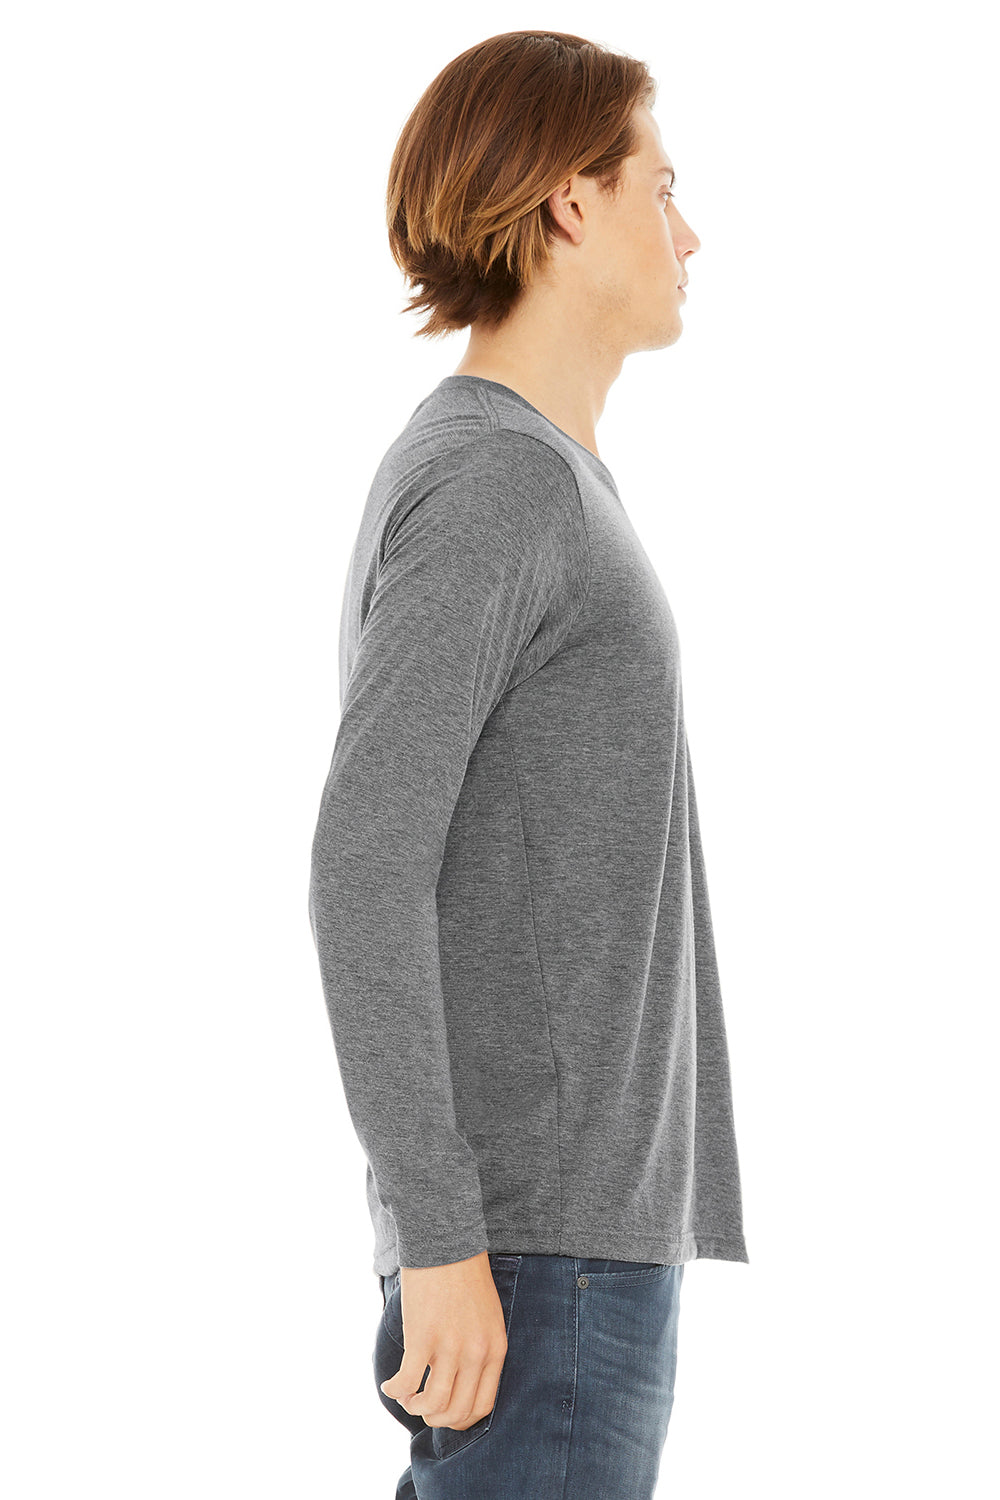 Bella + Canvas 3425 Mens Jersey Long Sleeve V-Neck T-Shirt Grey Side